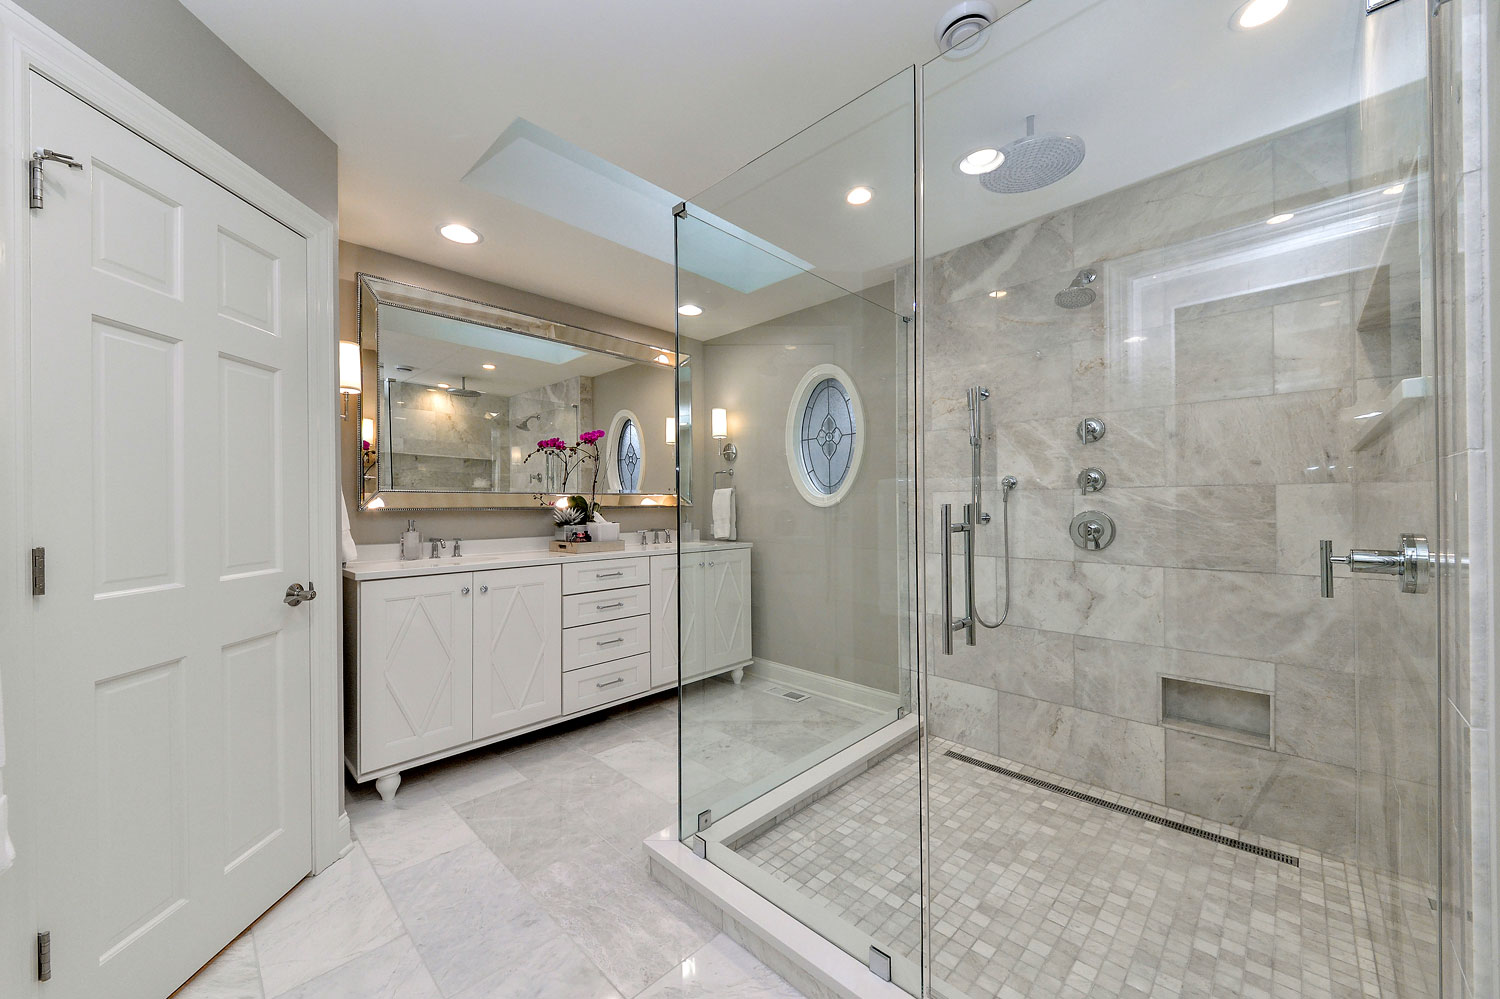 Bobby lisa 39 s master bathroom remodel pictures home for Remodeling companies